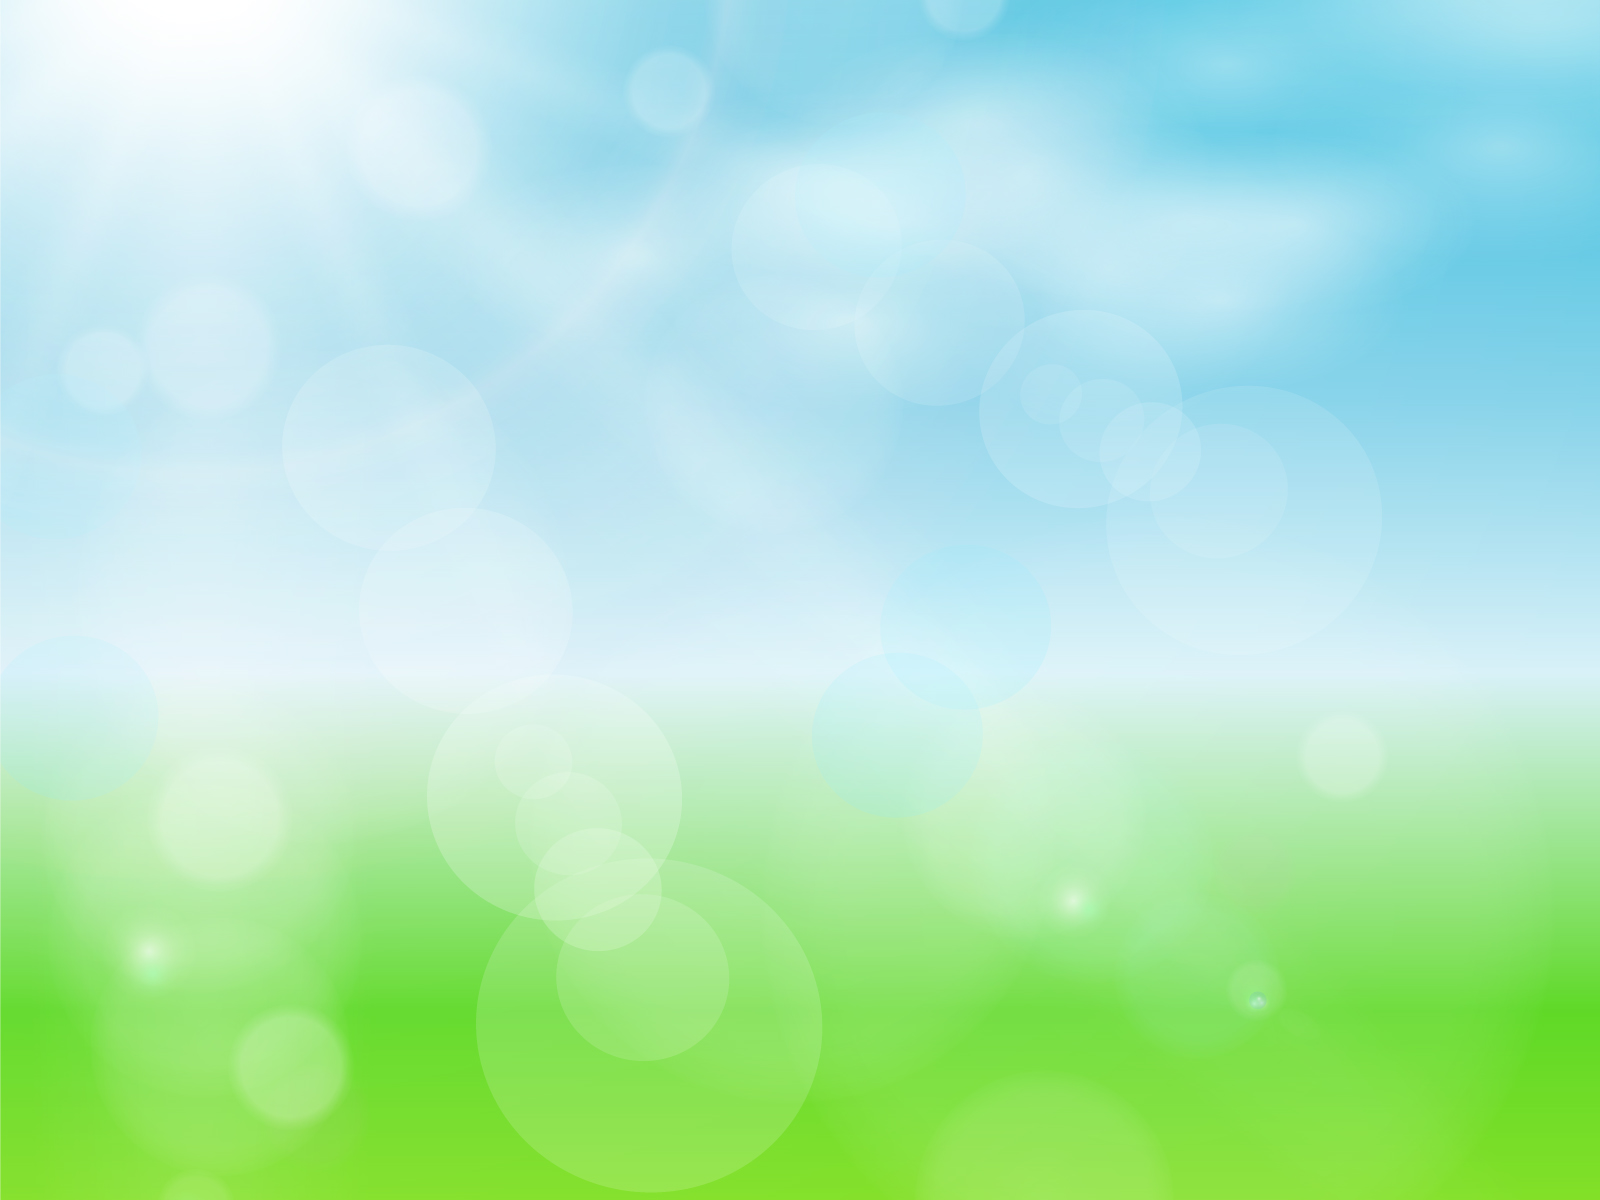 spring sun powerpoint design ppt backgrounds - blue, colors, Modern powerpoint